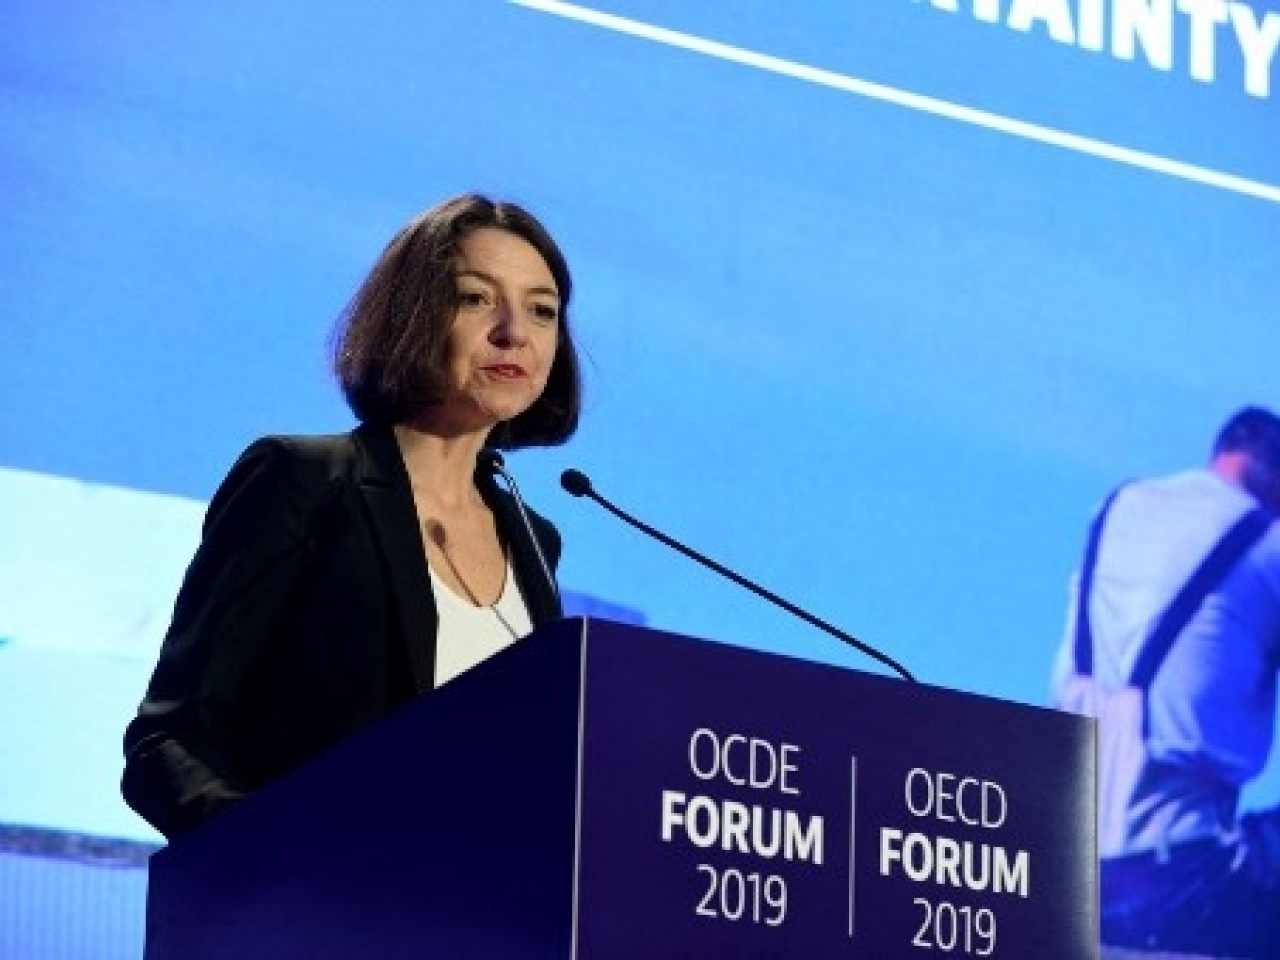 Chief Economist of the OECD, Laurence Boone, delivers a speech as she presents the OECD Economic Outlook. pHOTO: afp